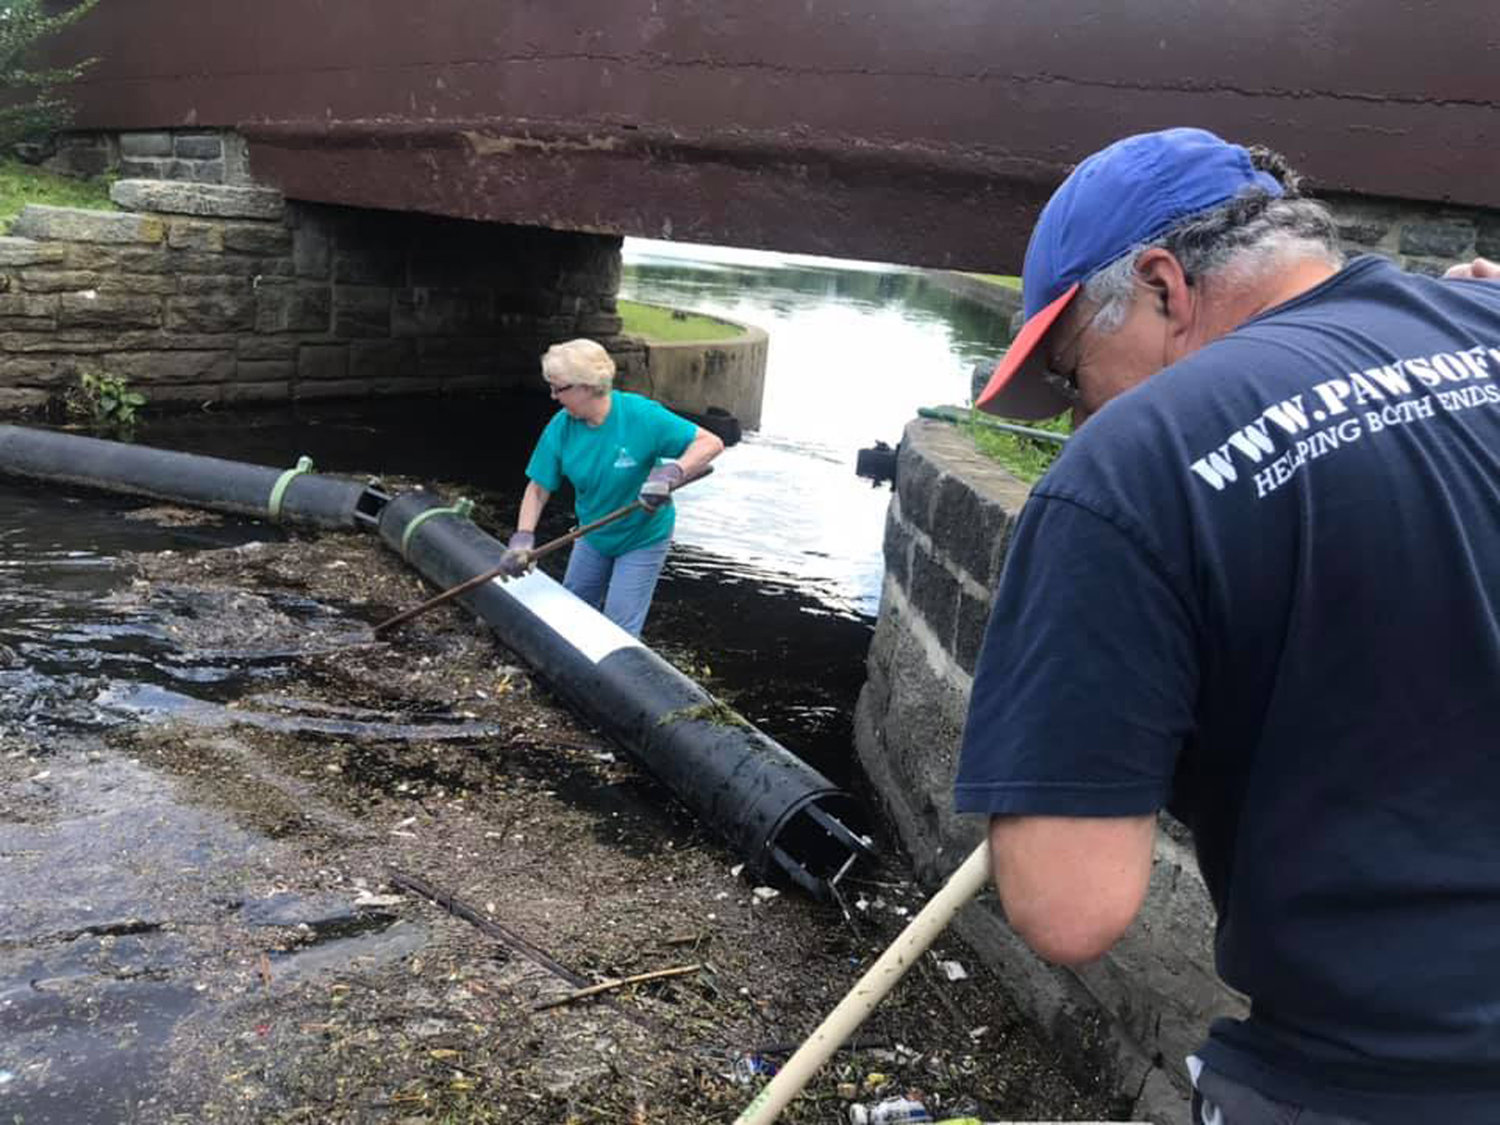 Patricia and Mike Russo cleaned the lake at the Arthur J. Hendrickson Park on June 22.